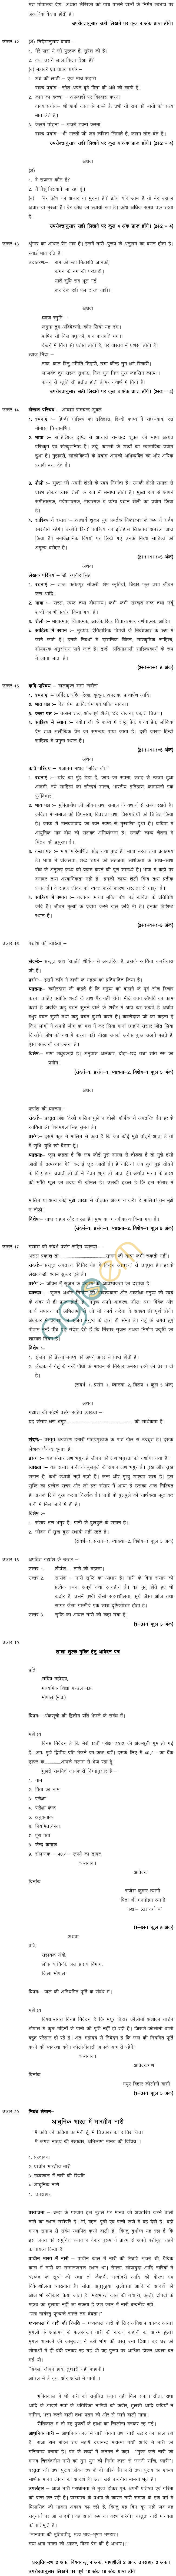 MP Board Class XII Hindi Special Model Questions & Answers - Set 1